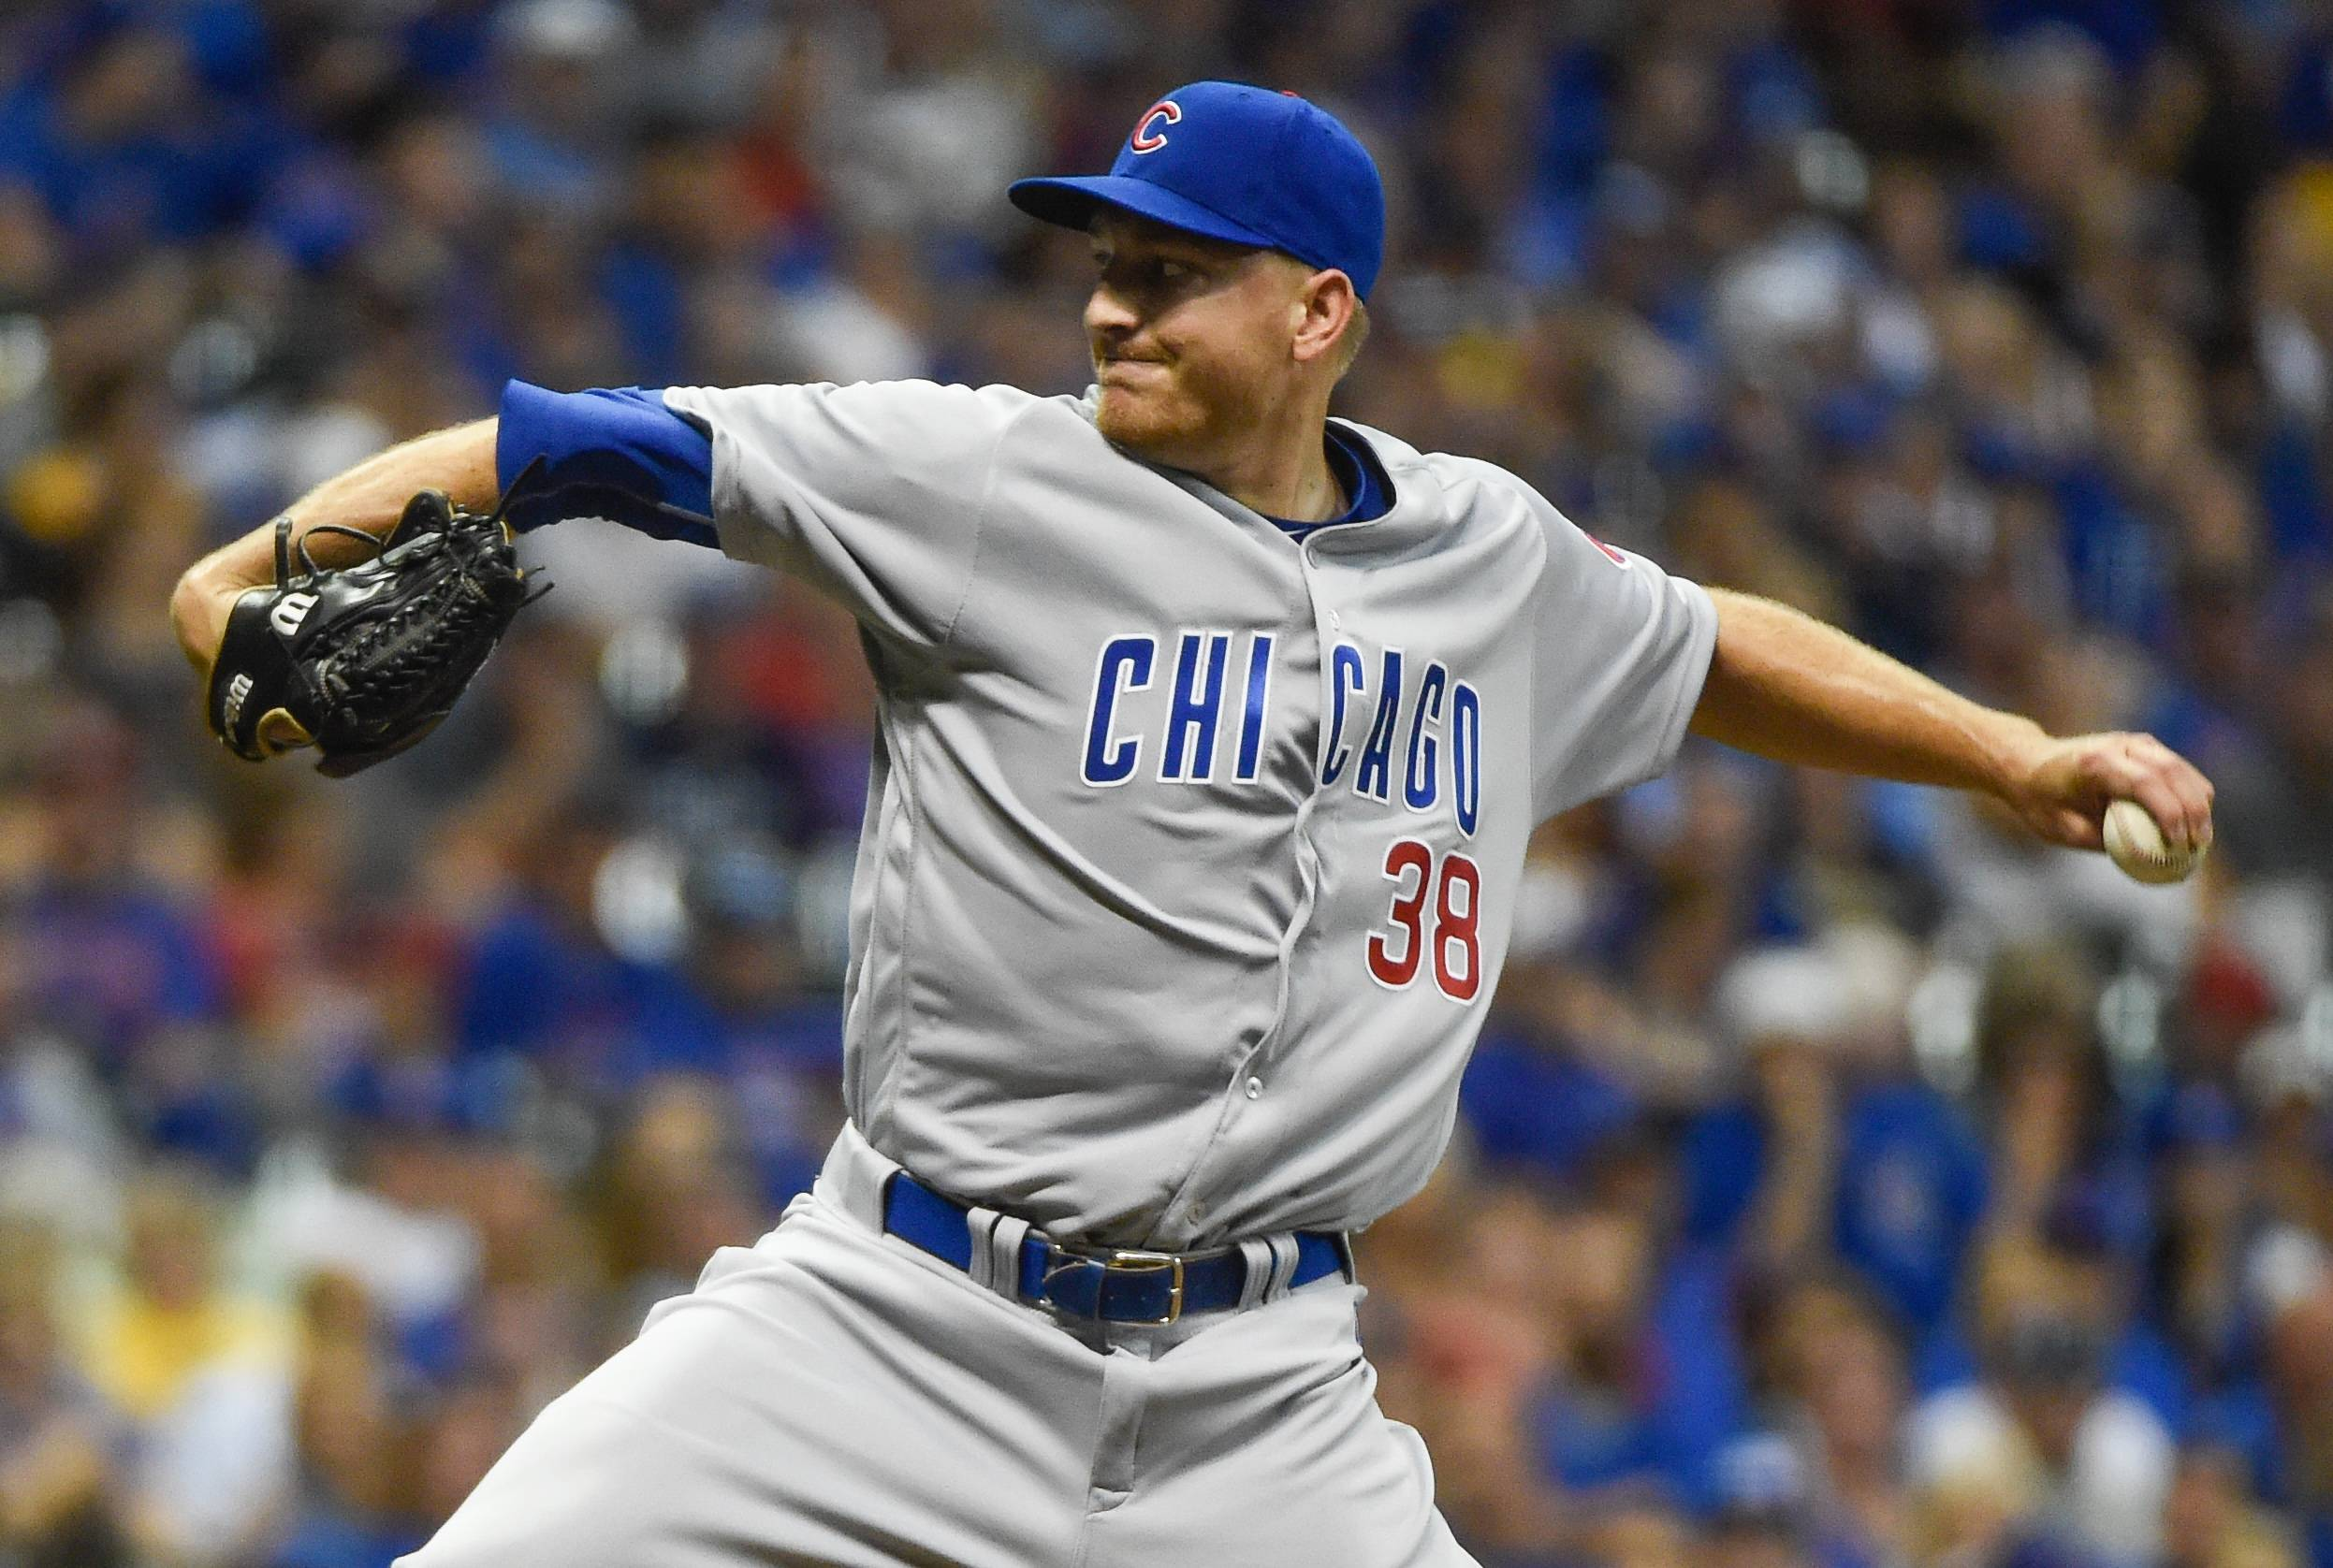 Chicago Cubs pitcher Mike Montgomery throws during the eighth inning of a baseball game against the Milwaukee Brewers, Saturday, July 23, 2016, in Milwaukee.